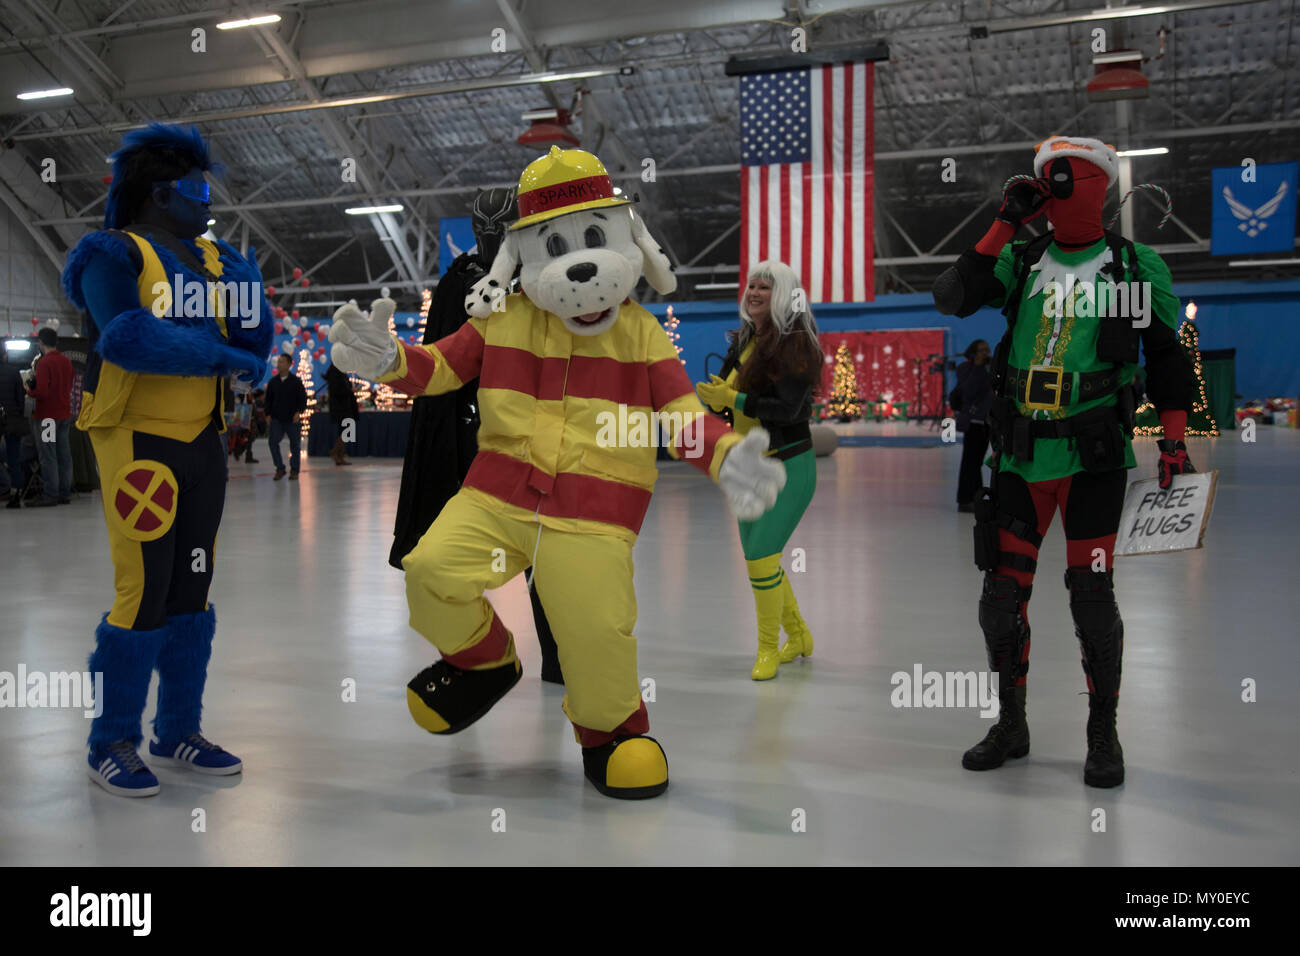 Sparky The Fire Dog National Protection Association Dances With Volunteers Dressed As Popular